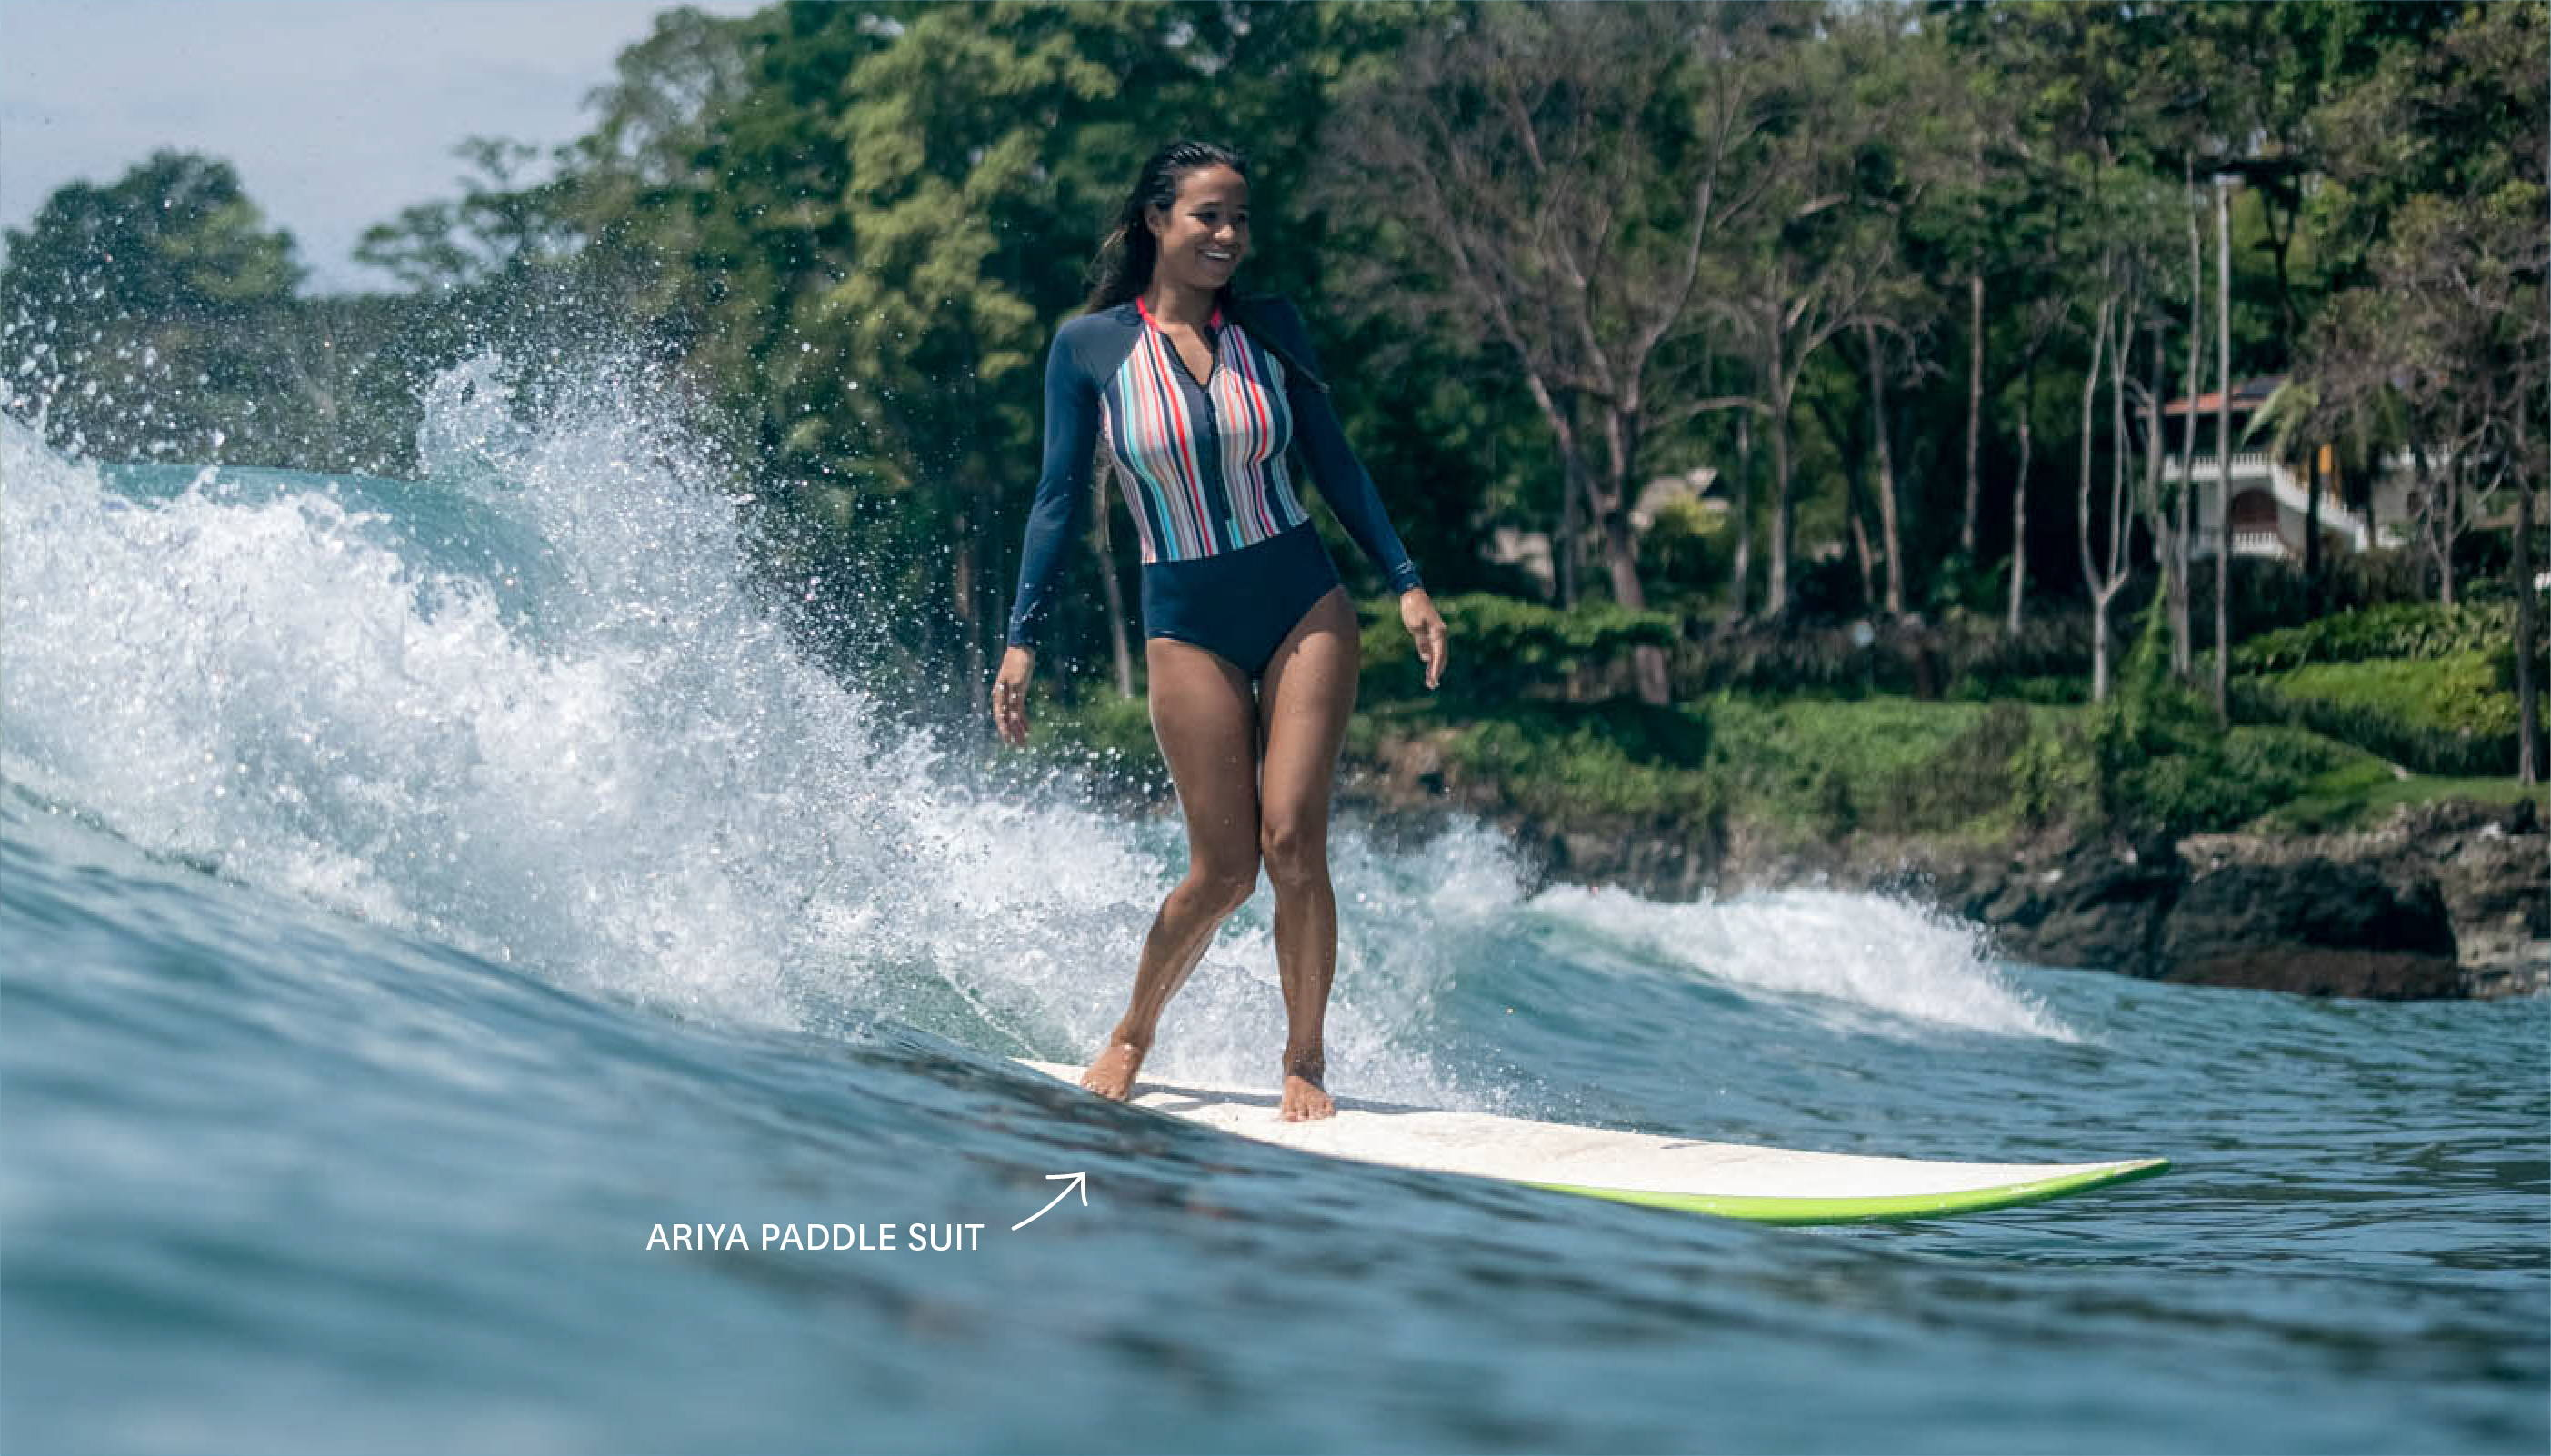 Get the Ariya Paddle Suit in our SULUADA print!